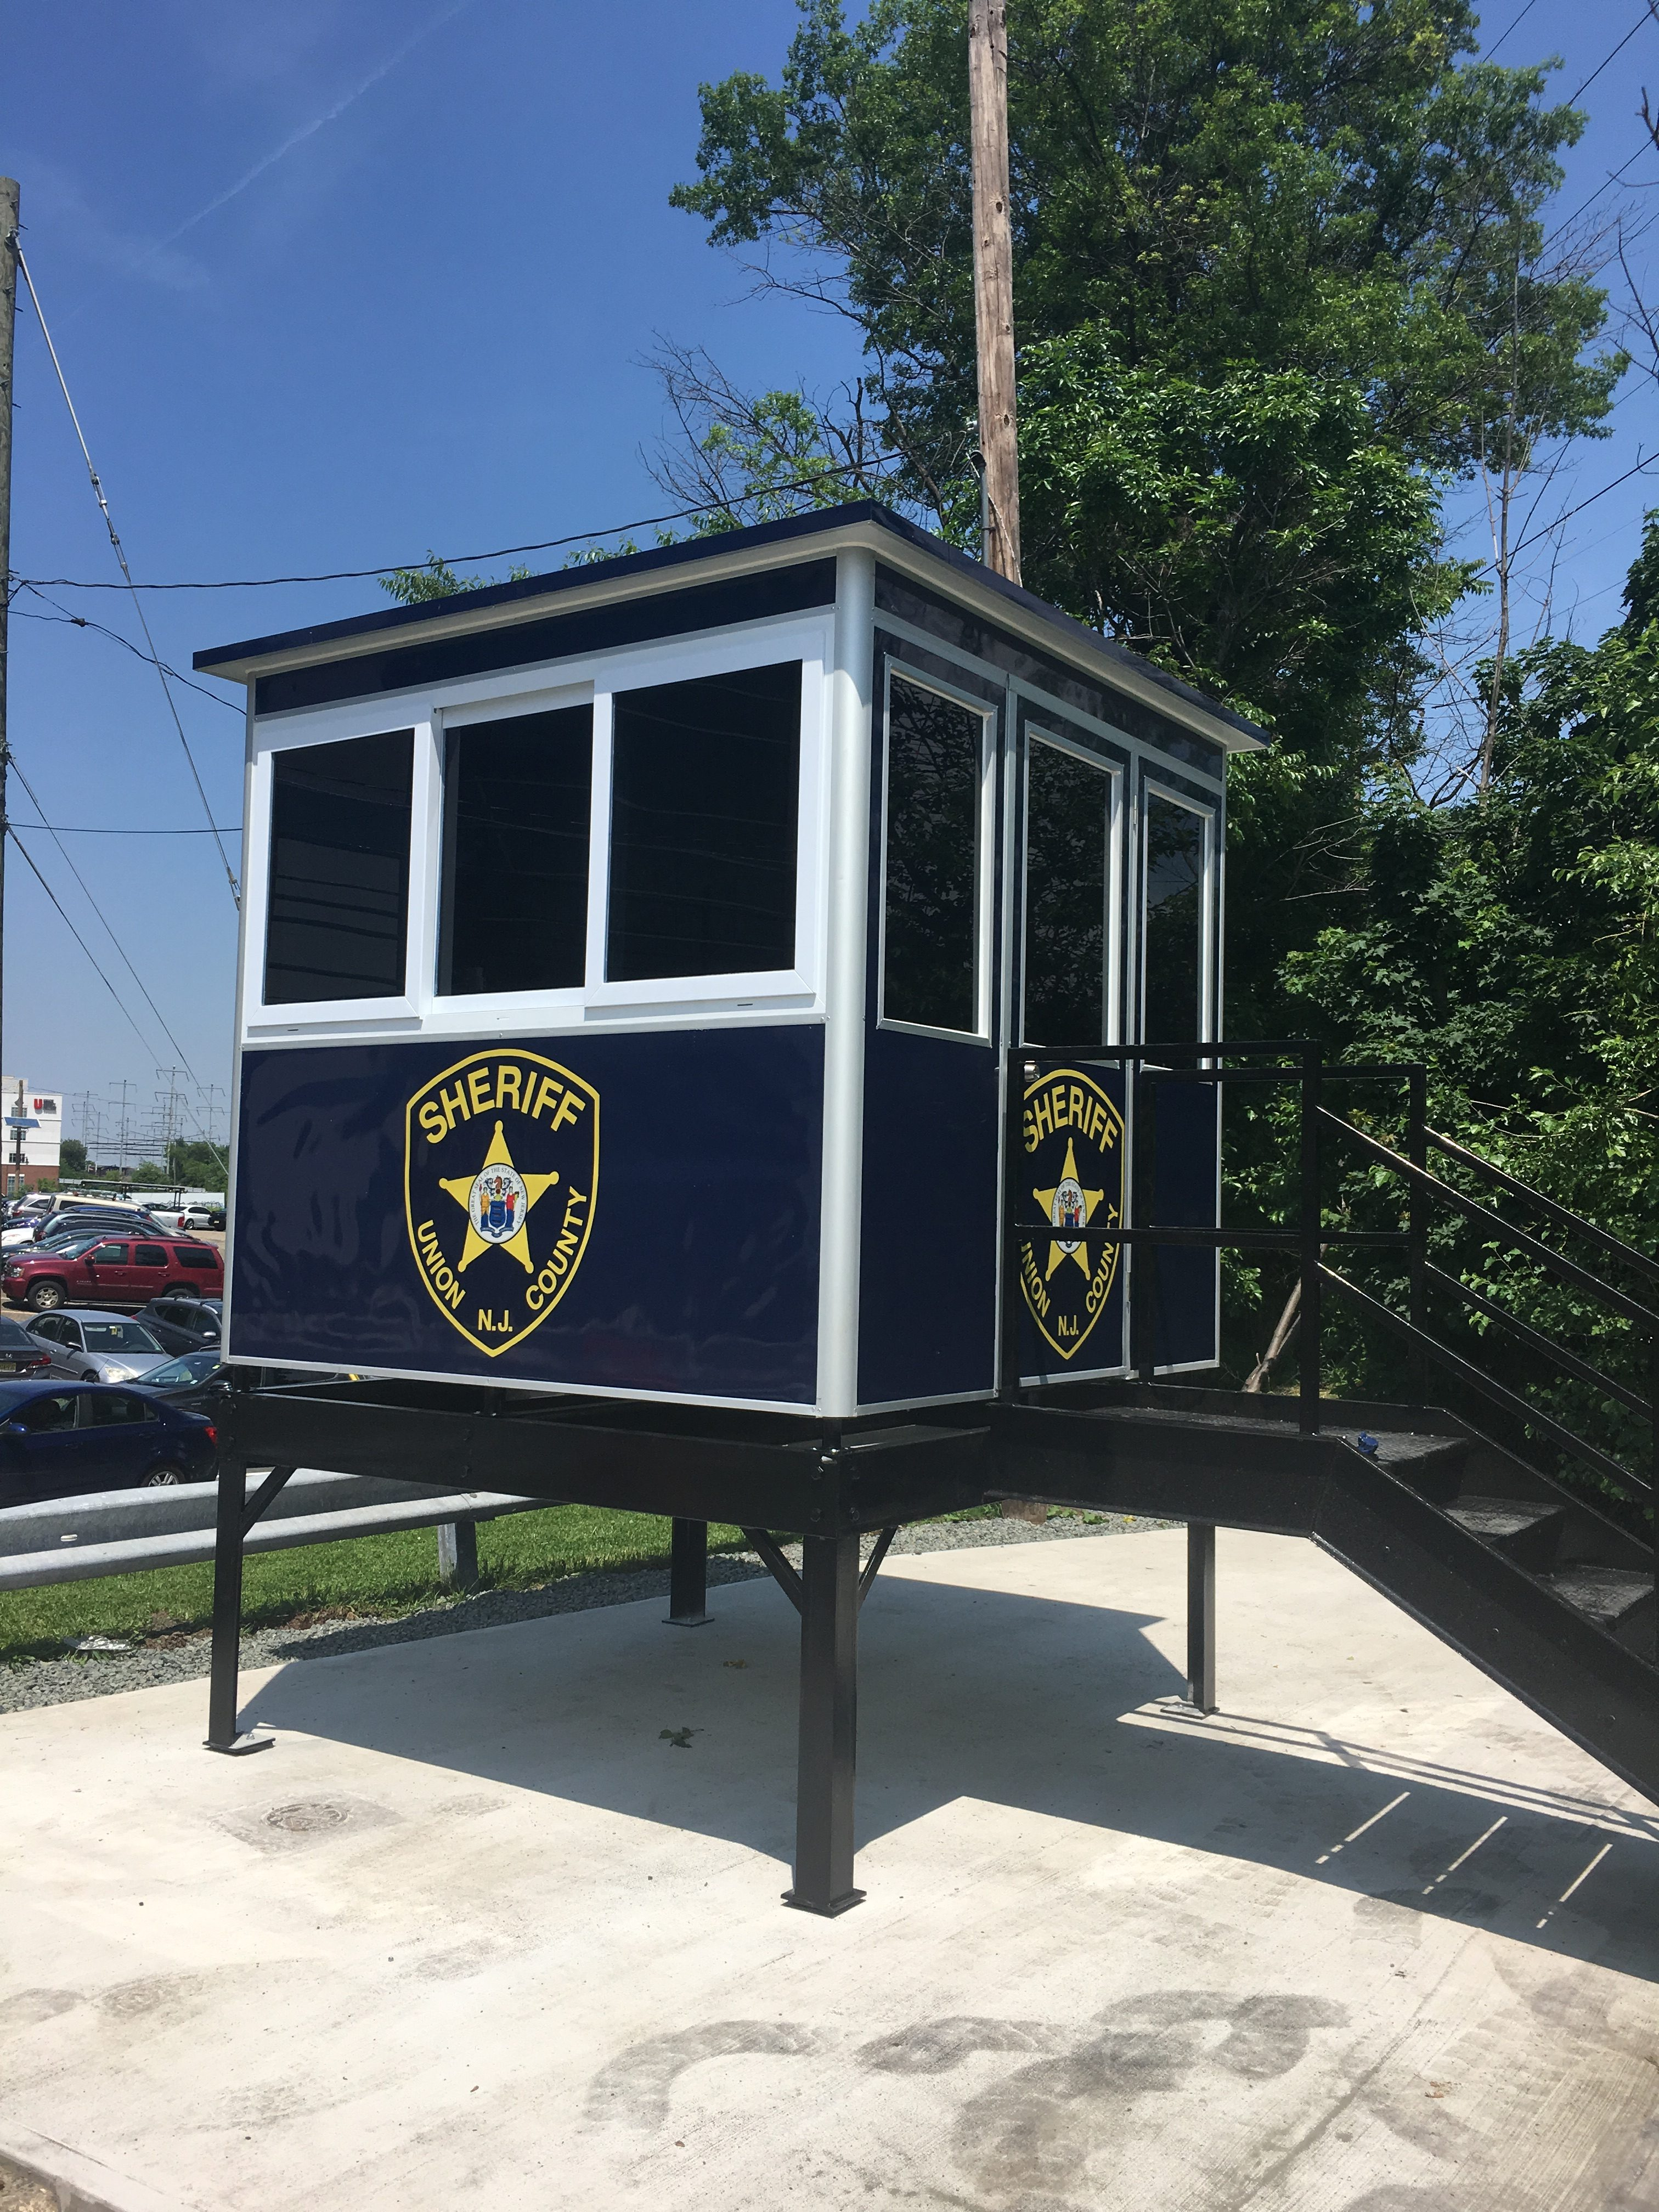 8x8 Security Guard Booth in Elizabeth, NJ with Custon Graphics, Sliding Windows, Tinted Windows, Built-in AC, Baseboard Heaters